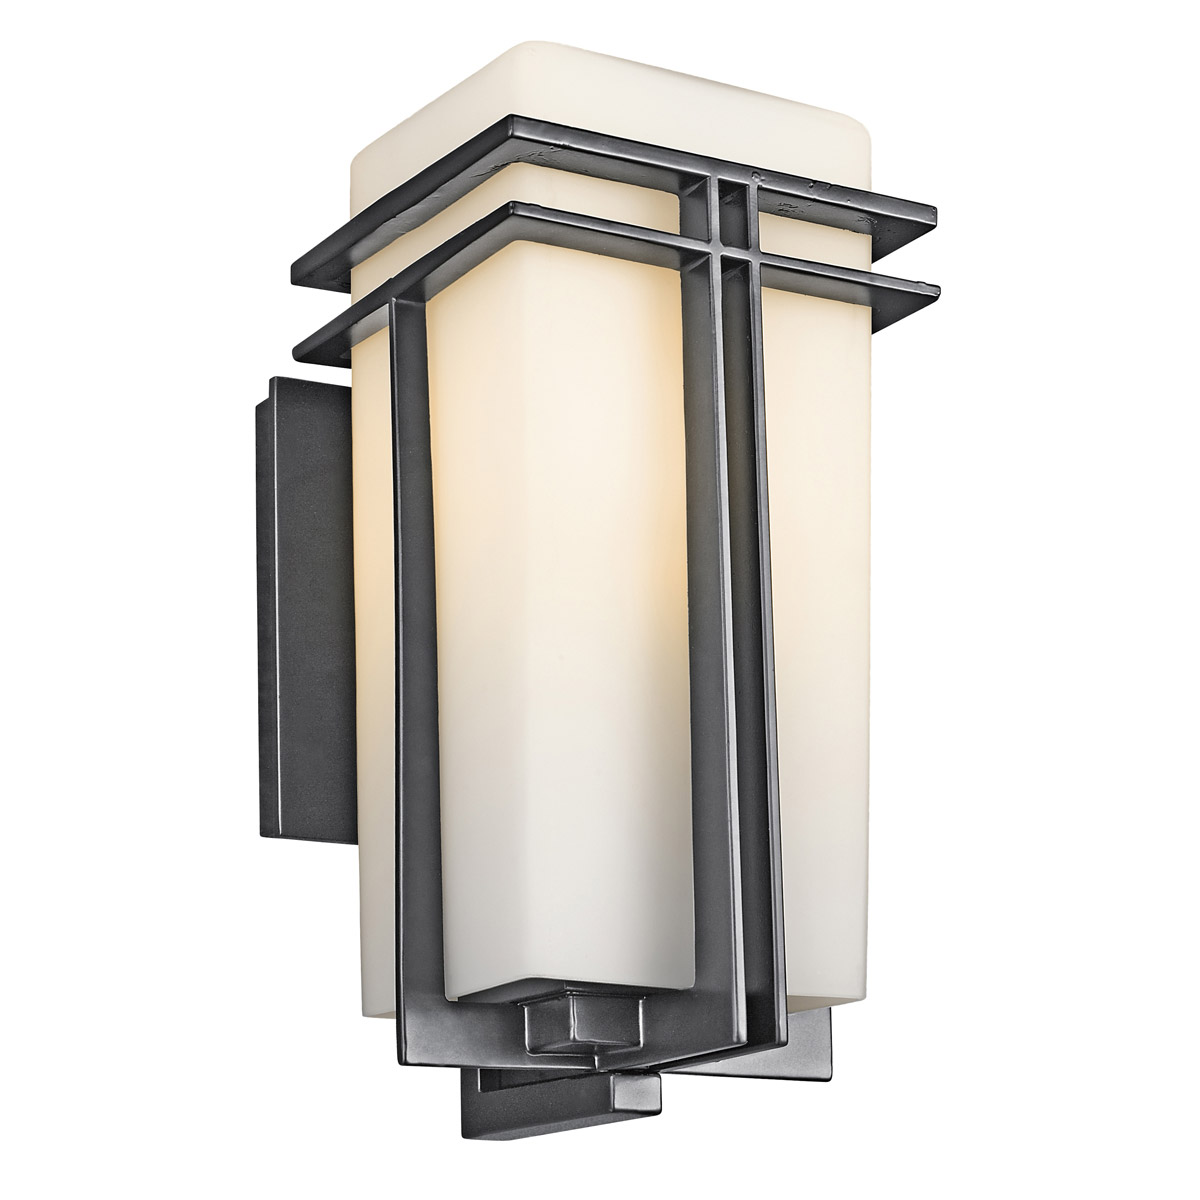 Kichler 49201bk tremillo outdoor wall fixture aloadofball Images